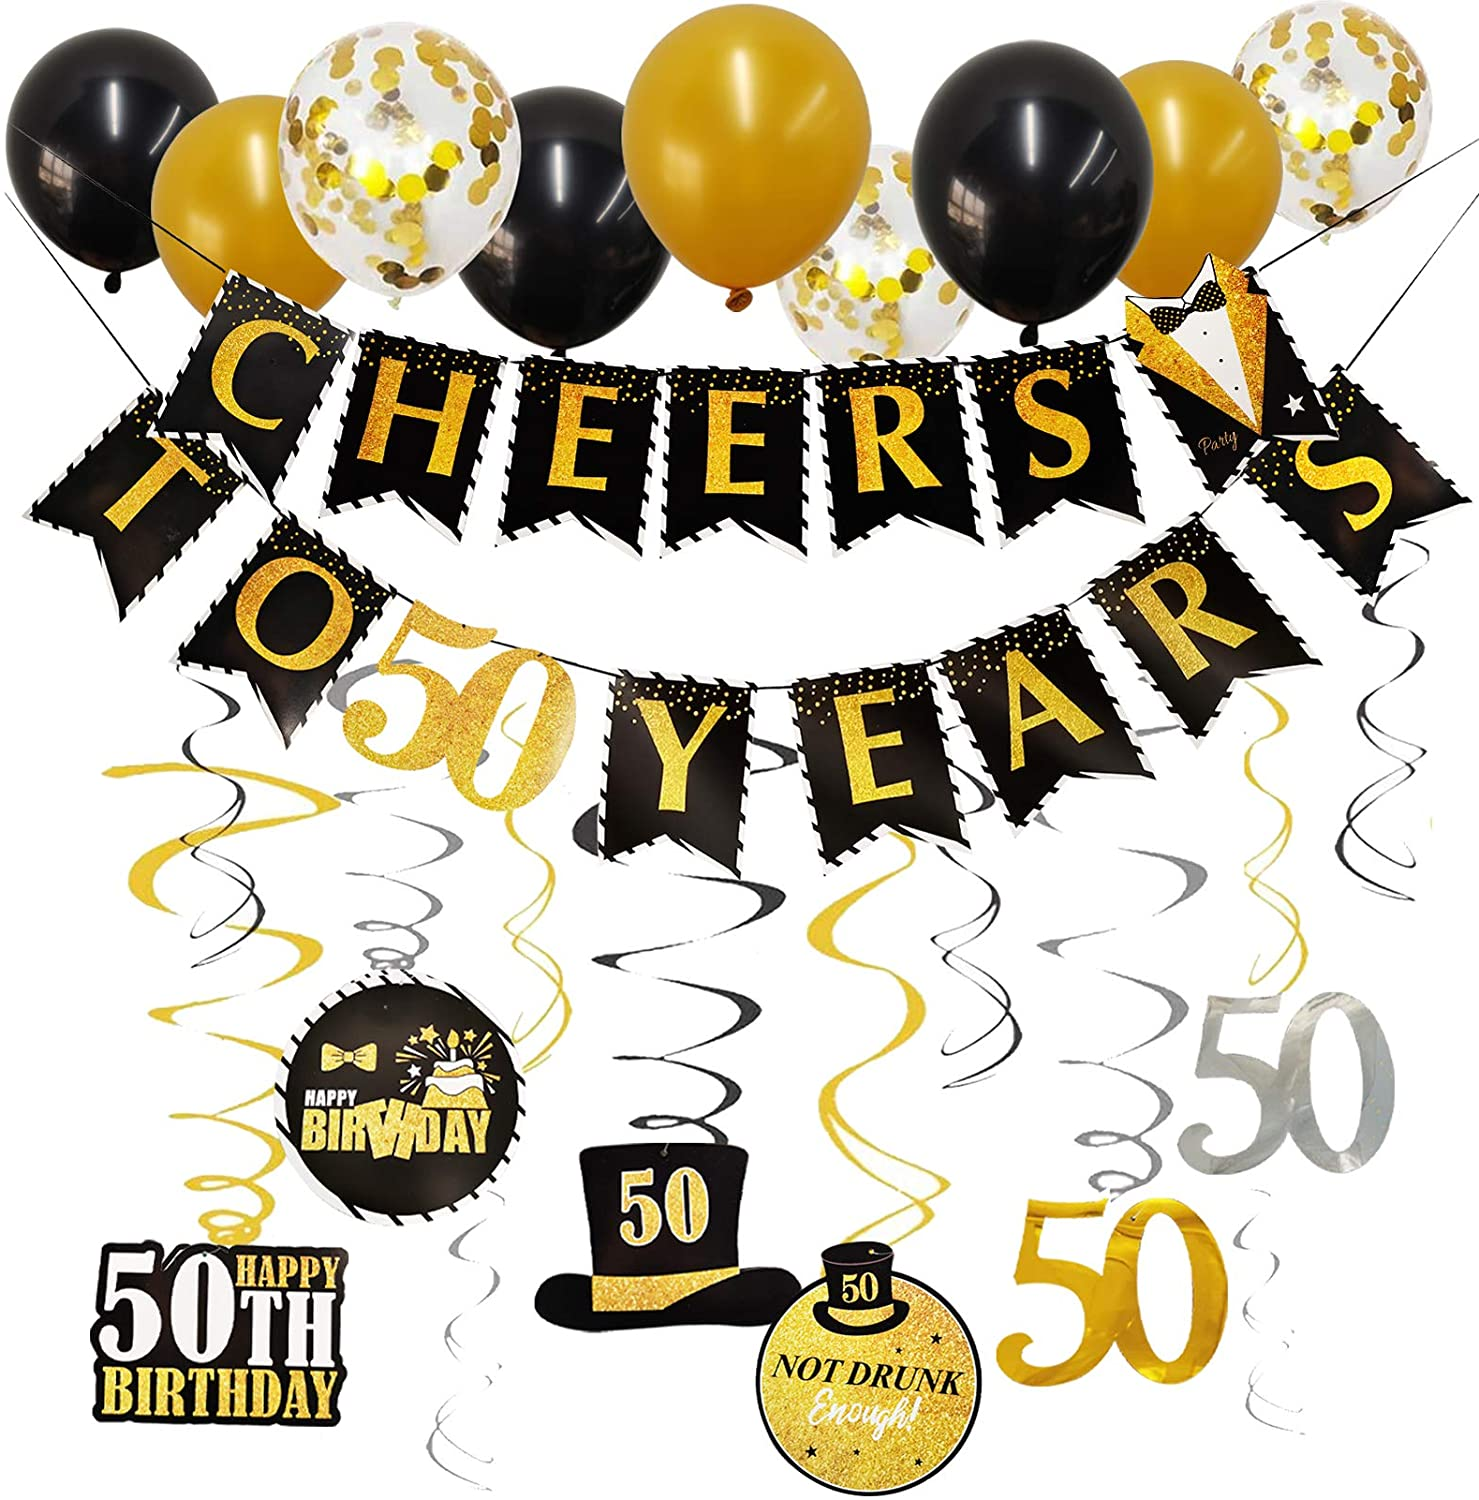 50th Birthday Party Decorations That Will Make Your Party Fabulous